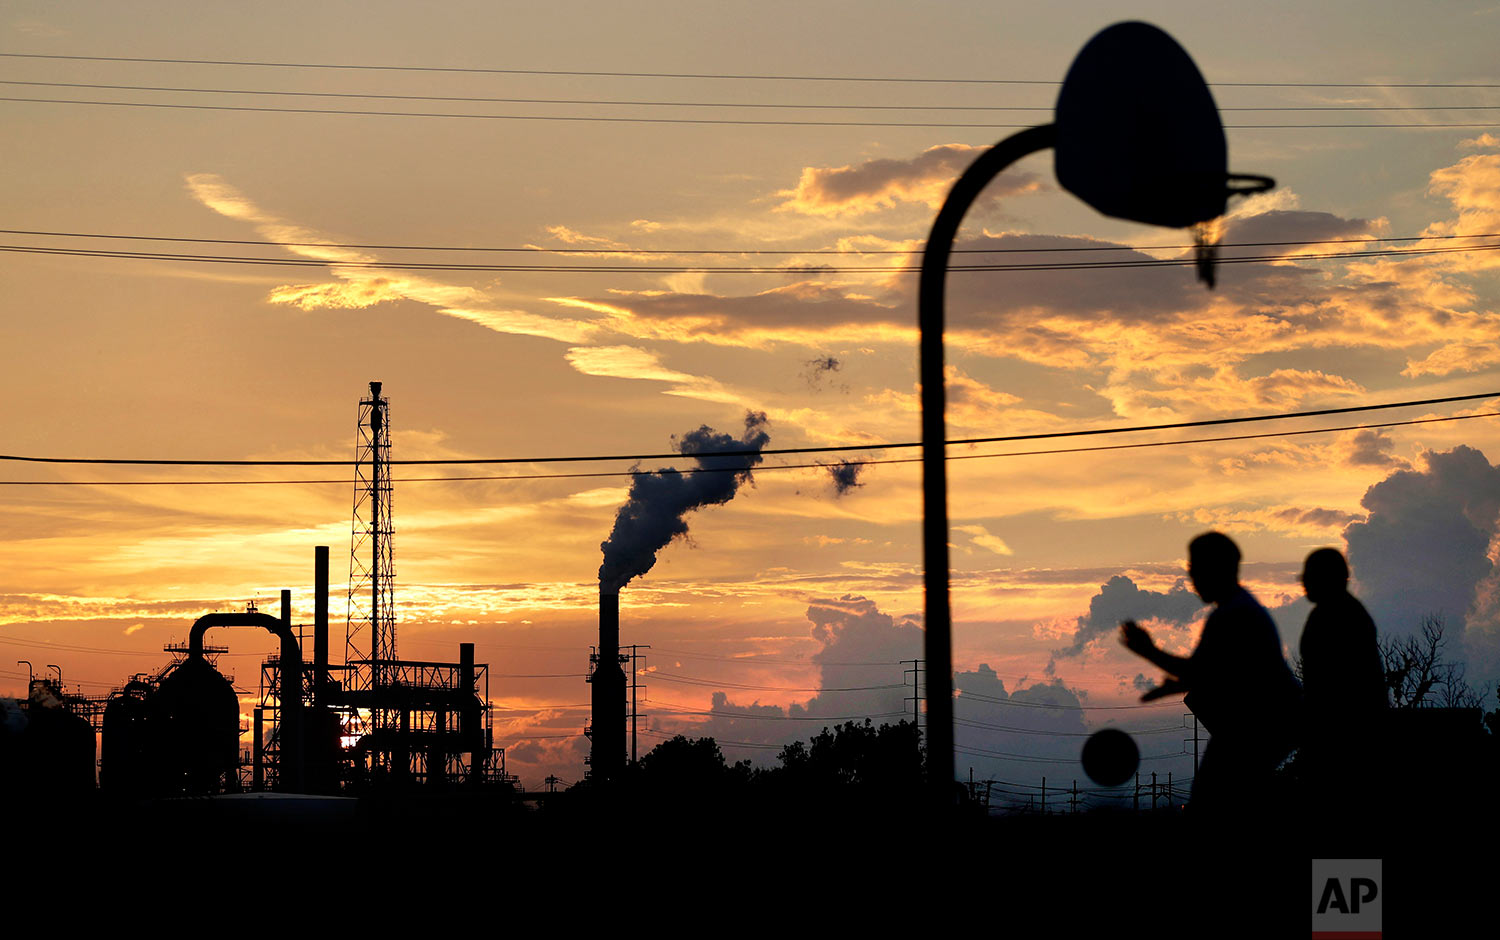 An oil refinery stands in the background as children play on a basketball court in Port Arthur, Texas, Wednesday, Sept. 27, 2017. The region's economy is tied to the petroleum industry more than in any other place in America: the concentration of people here employed by refineries is 81 times higher than the rest of the country. (AP Photo/David Goldman)